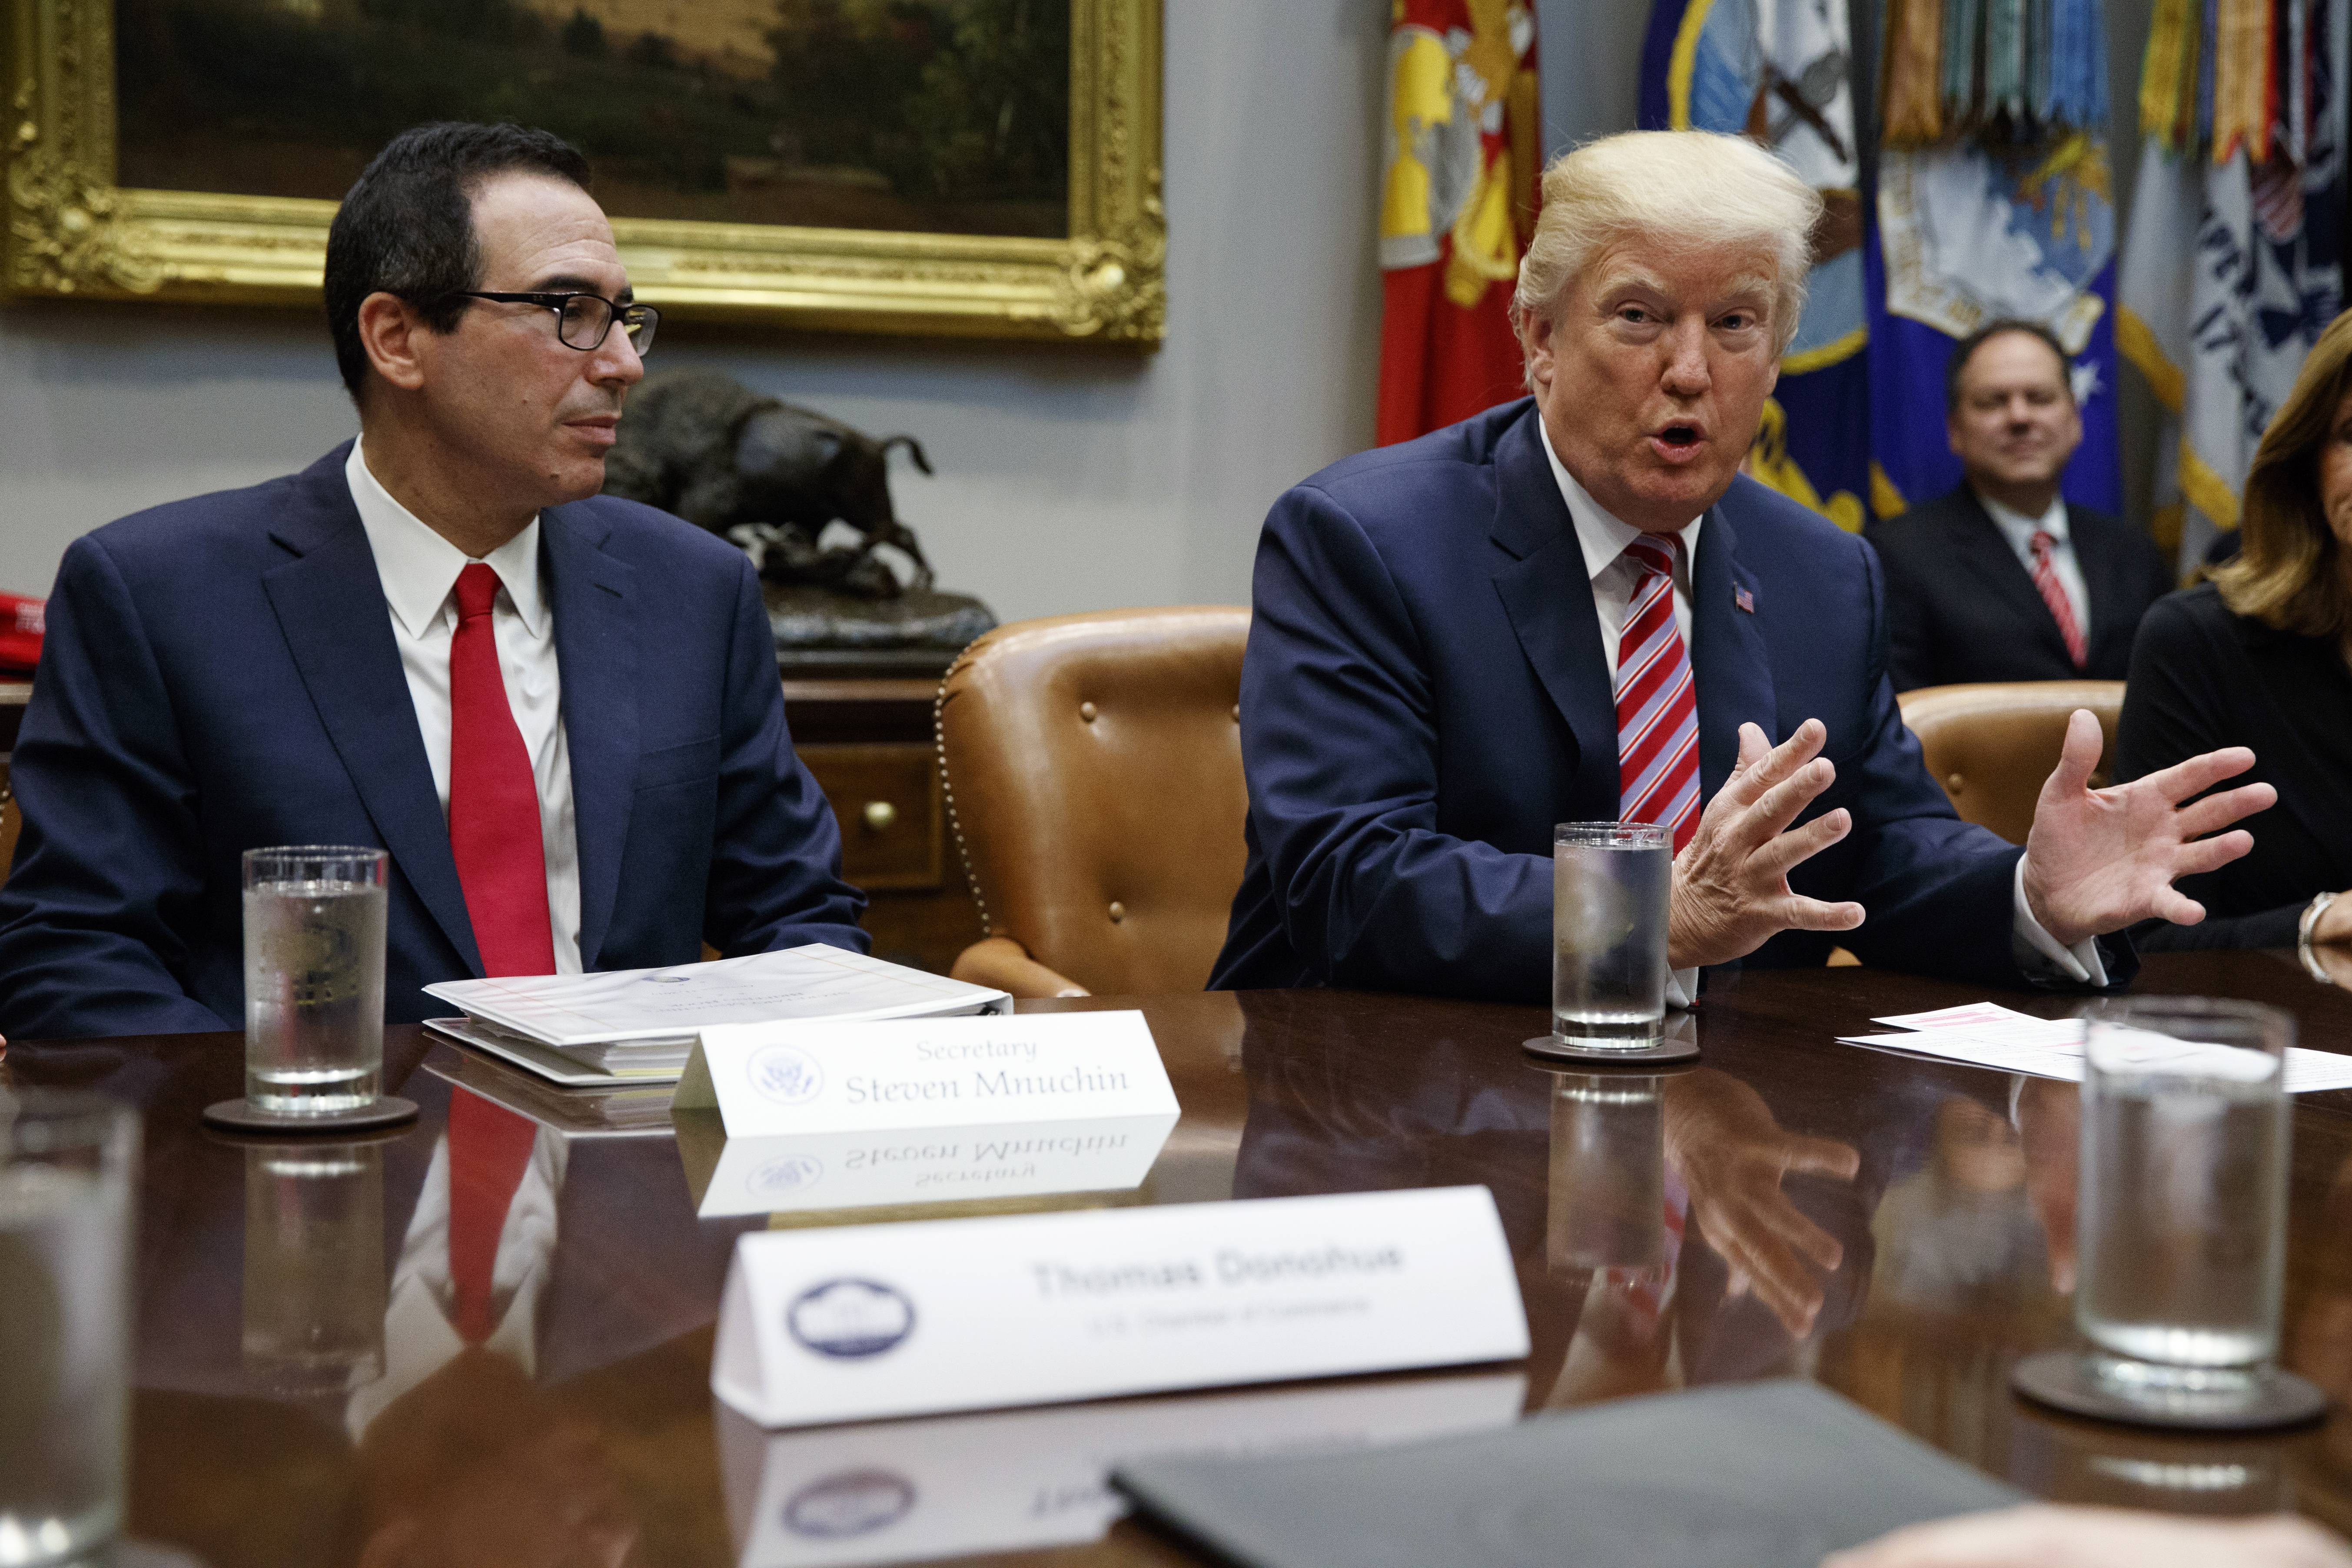 Treasury Secretary Steve Mnuchin listens Tuesday as President Donald Trump speaks during a meeting on tax policy with business leaders in the Roosevelt Room of the White House in Washington.